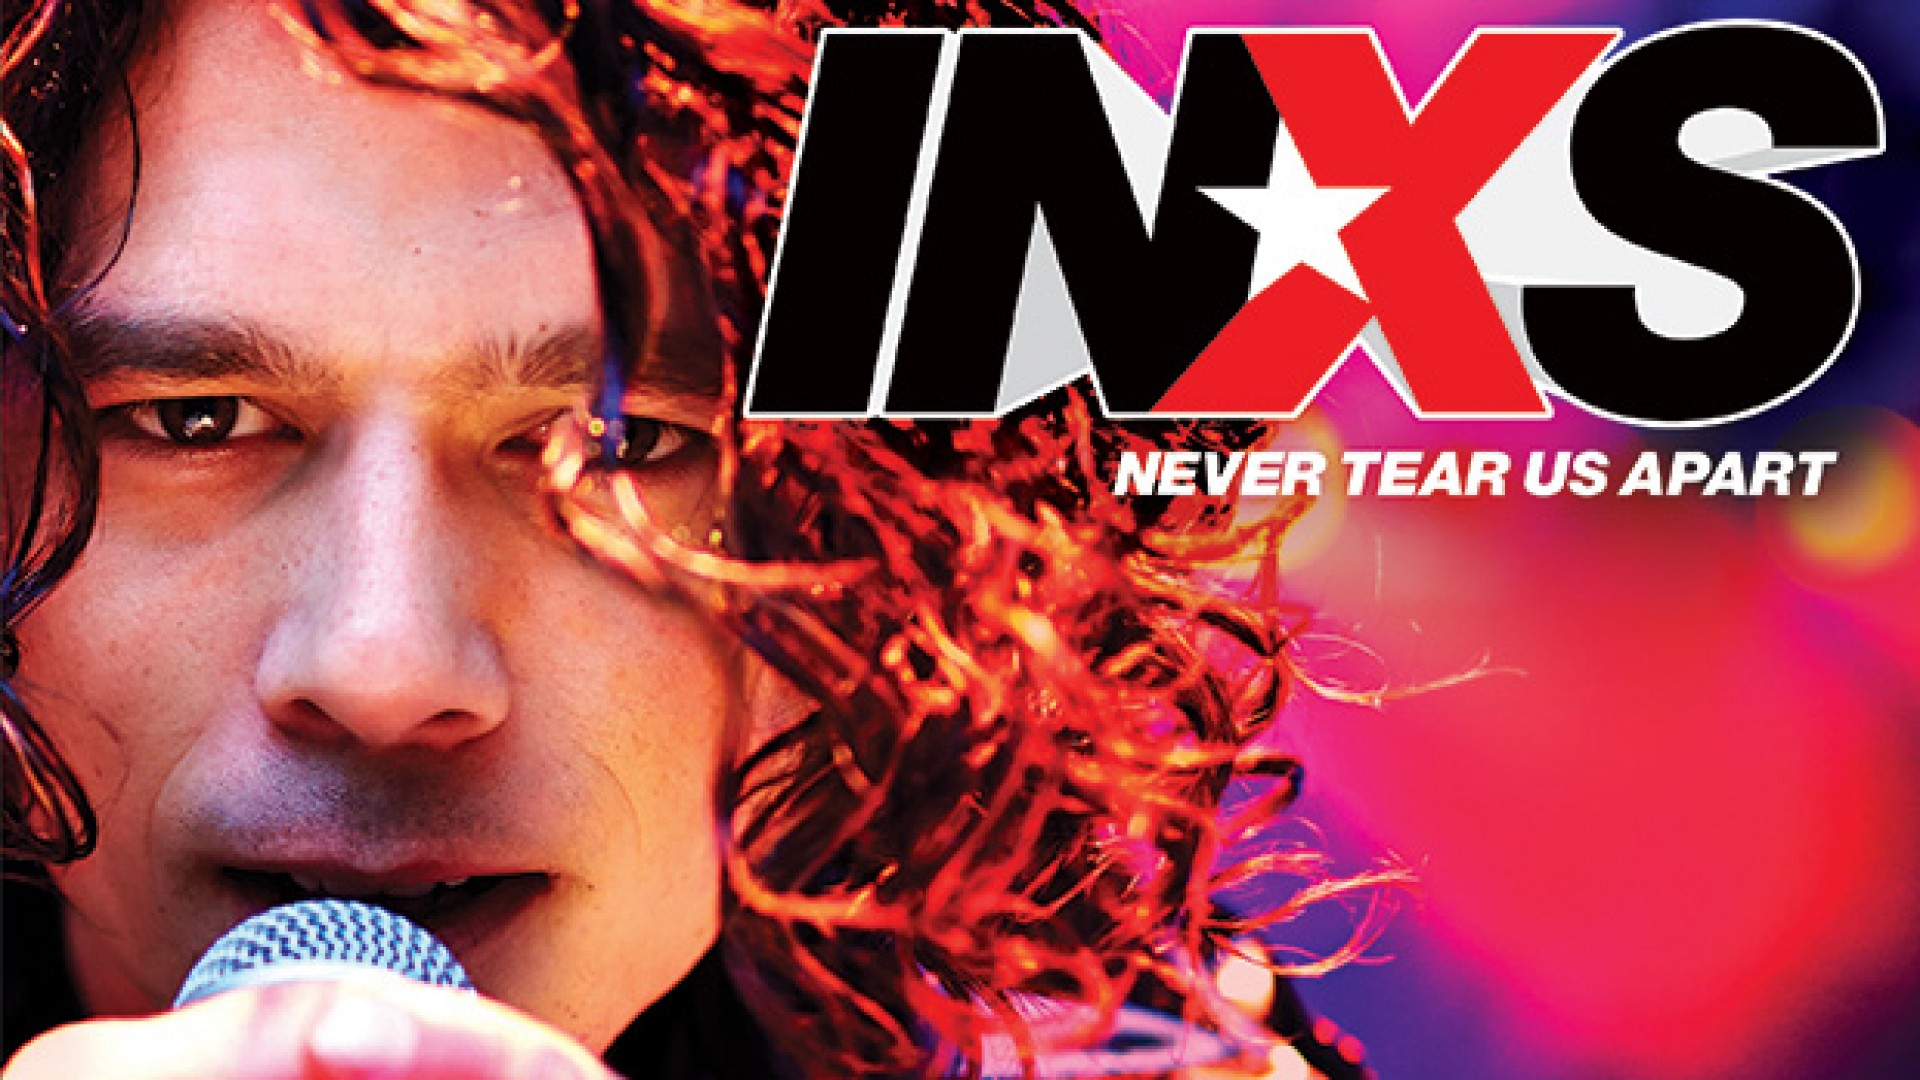 Never Tear Us Apart: The Untold Story of INXS on DVD